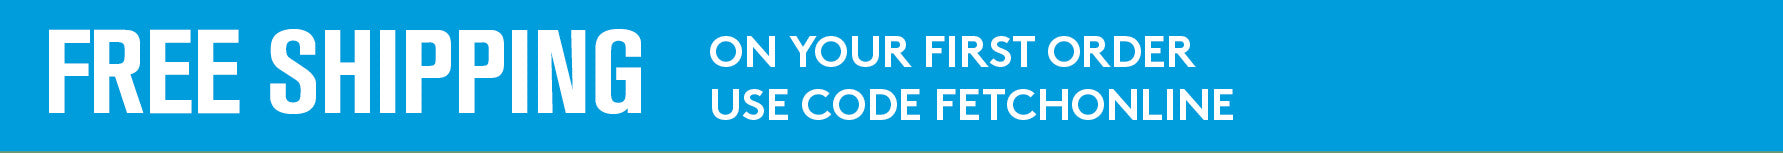 FETCHONLINE is for online use only. Receive free shipping on your first online purchase.